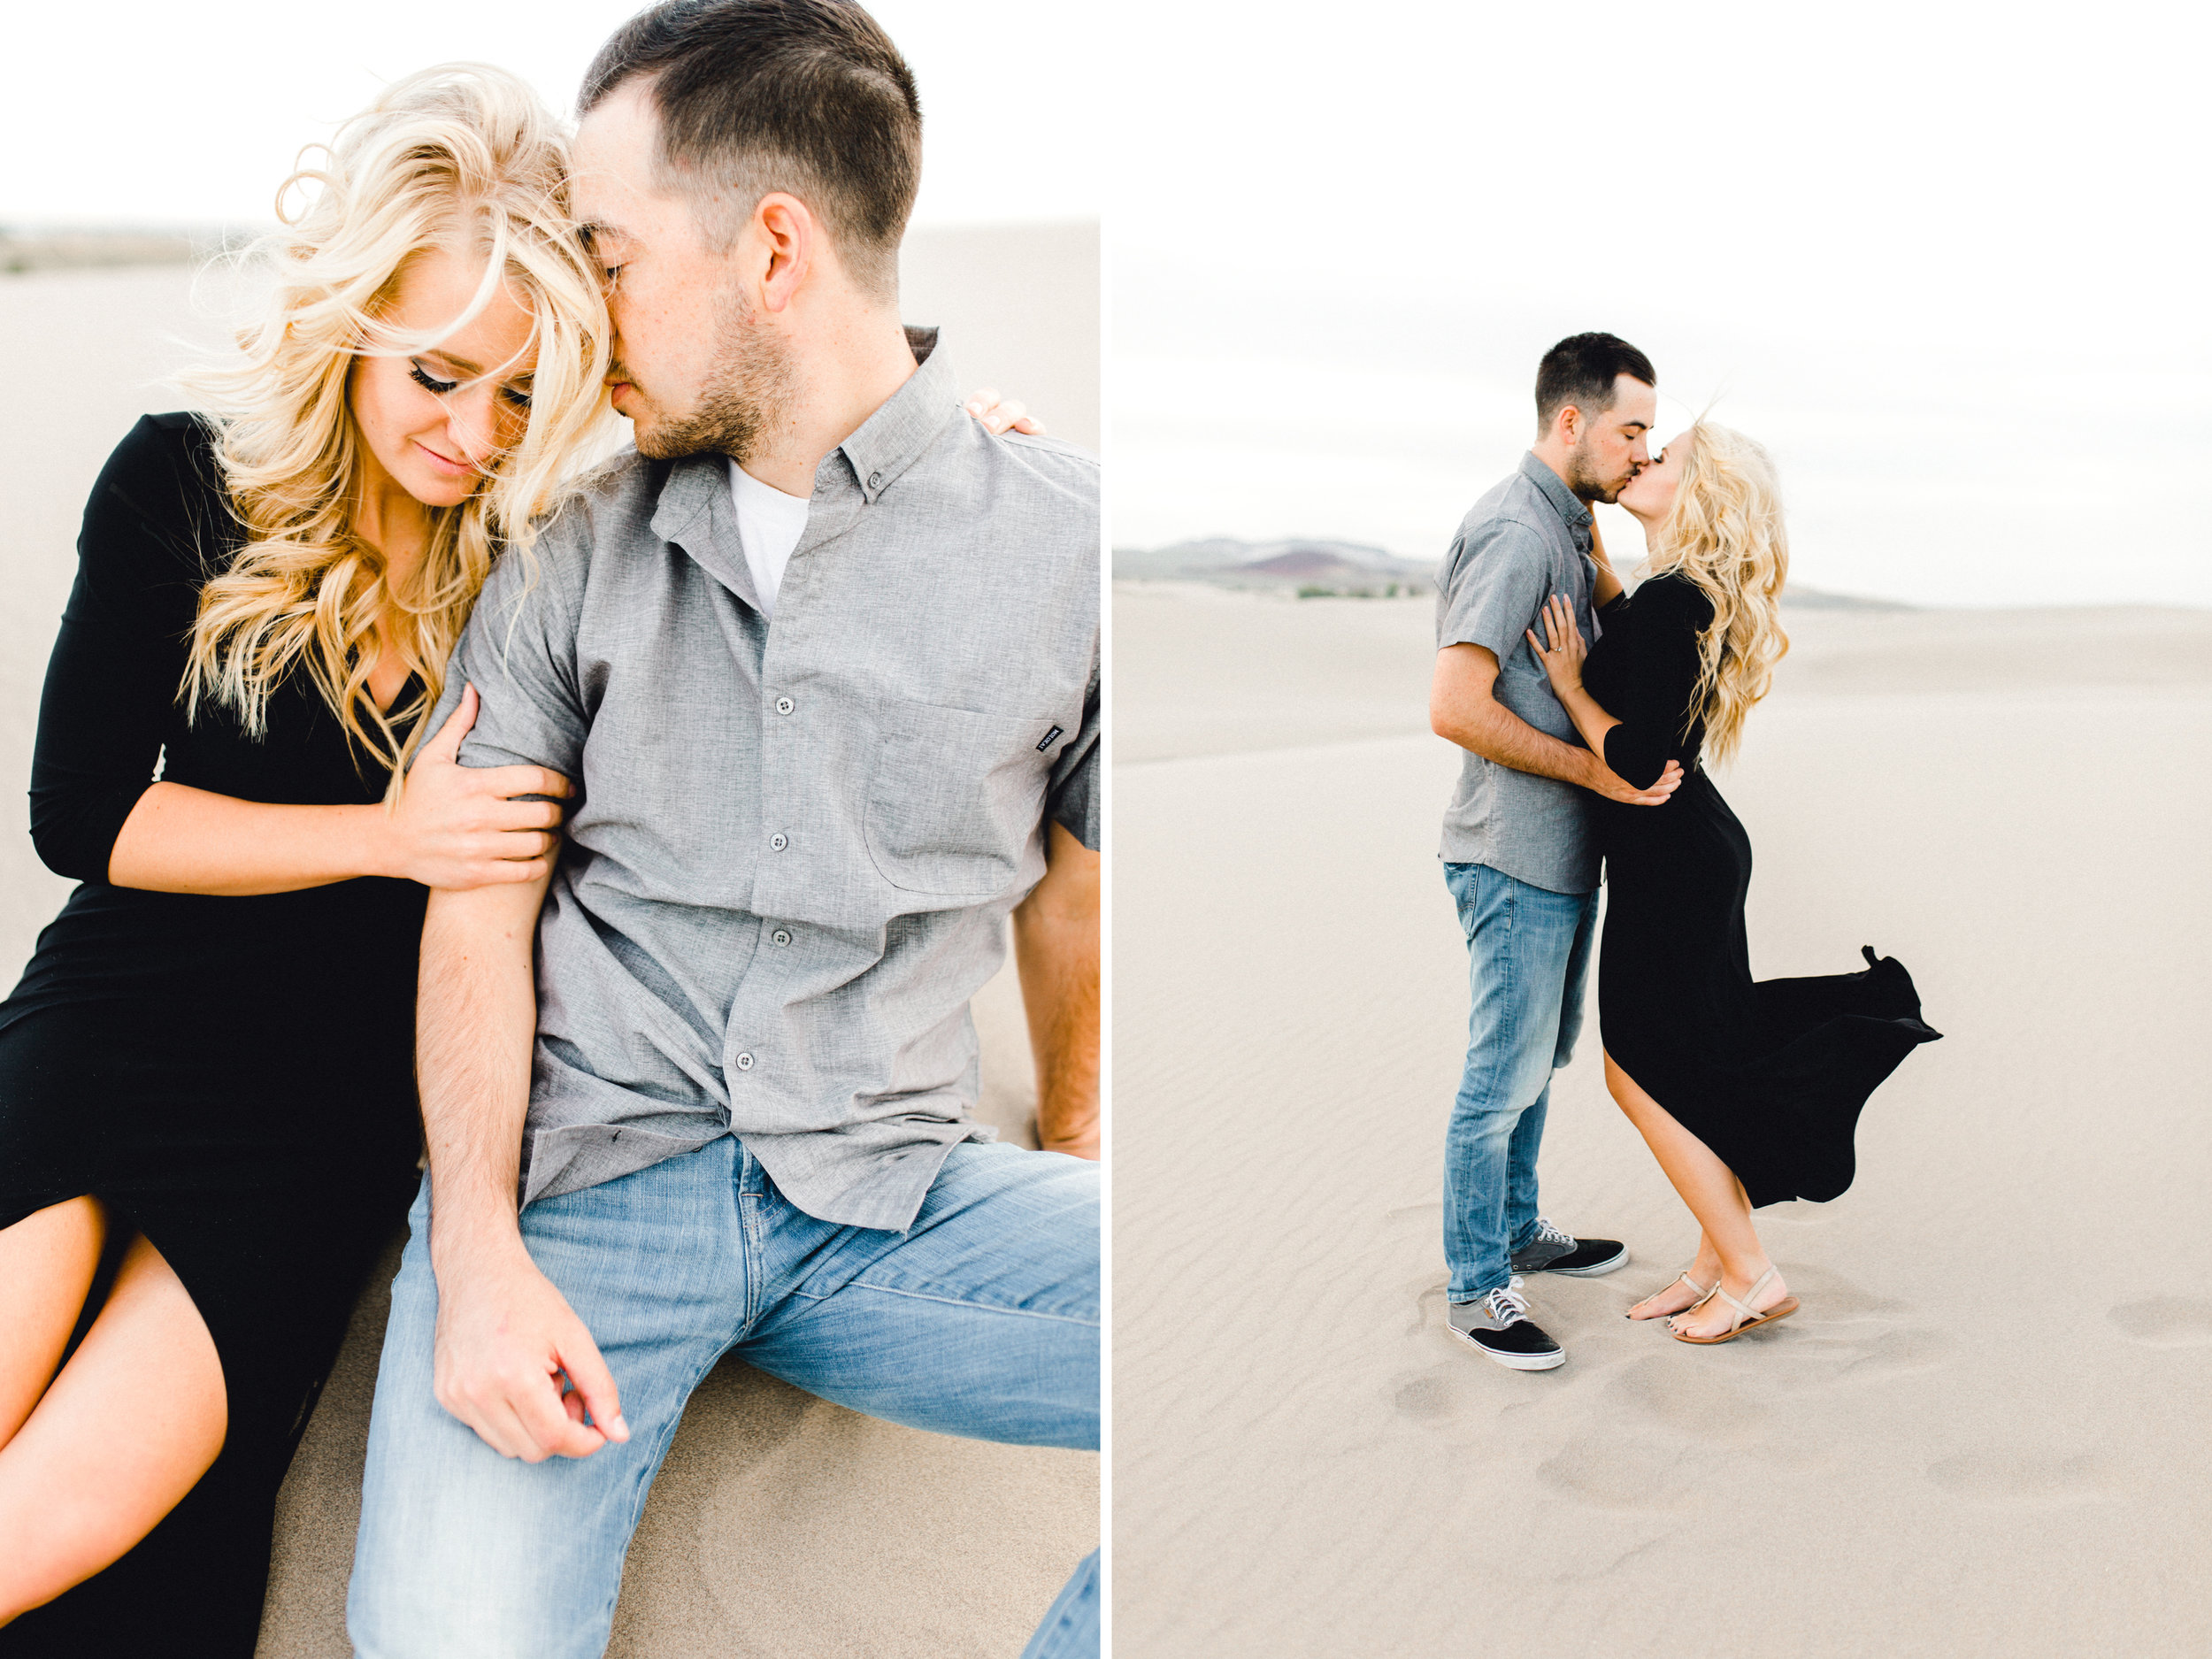 rexburg-idaho-sand-dunes-engagement-photographer-august-trevor8.jpg